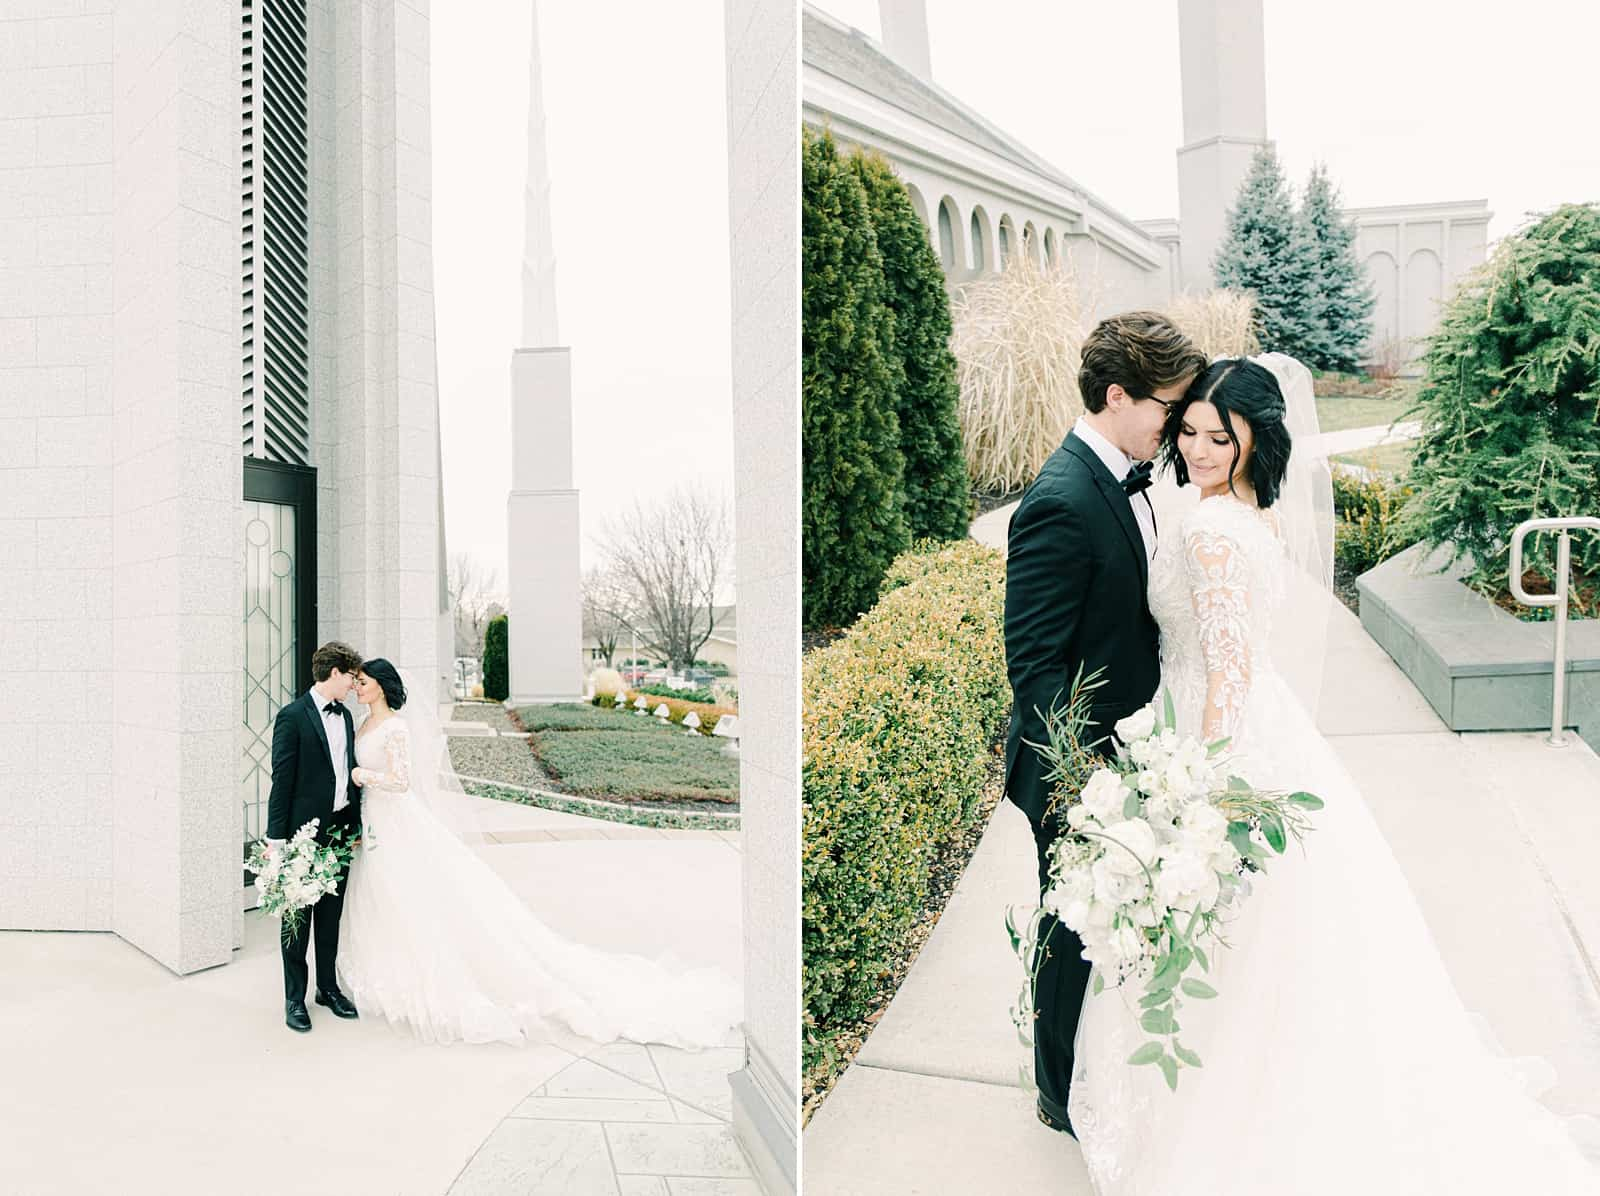 Luxury winter wedding at Willowbridge Estate in Boise, Idaho, bride and groom at LDS temple wedding